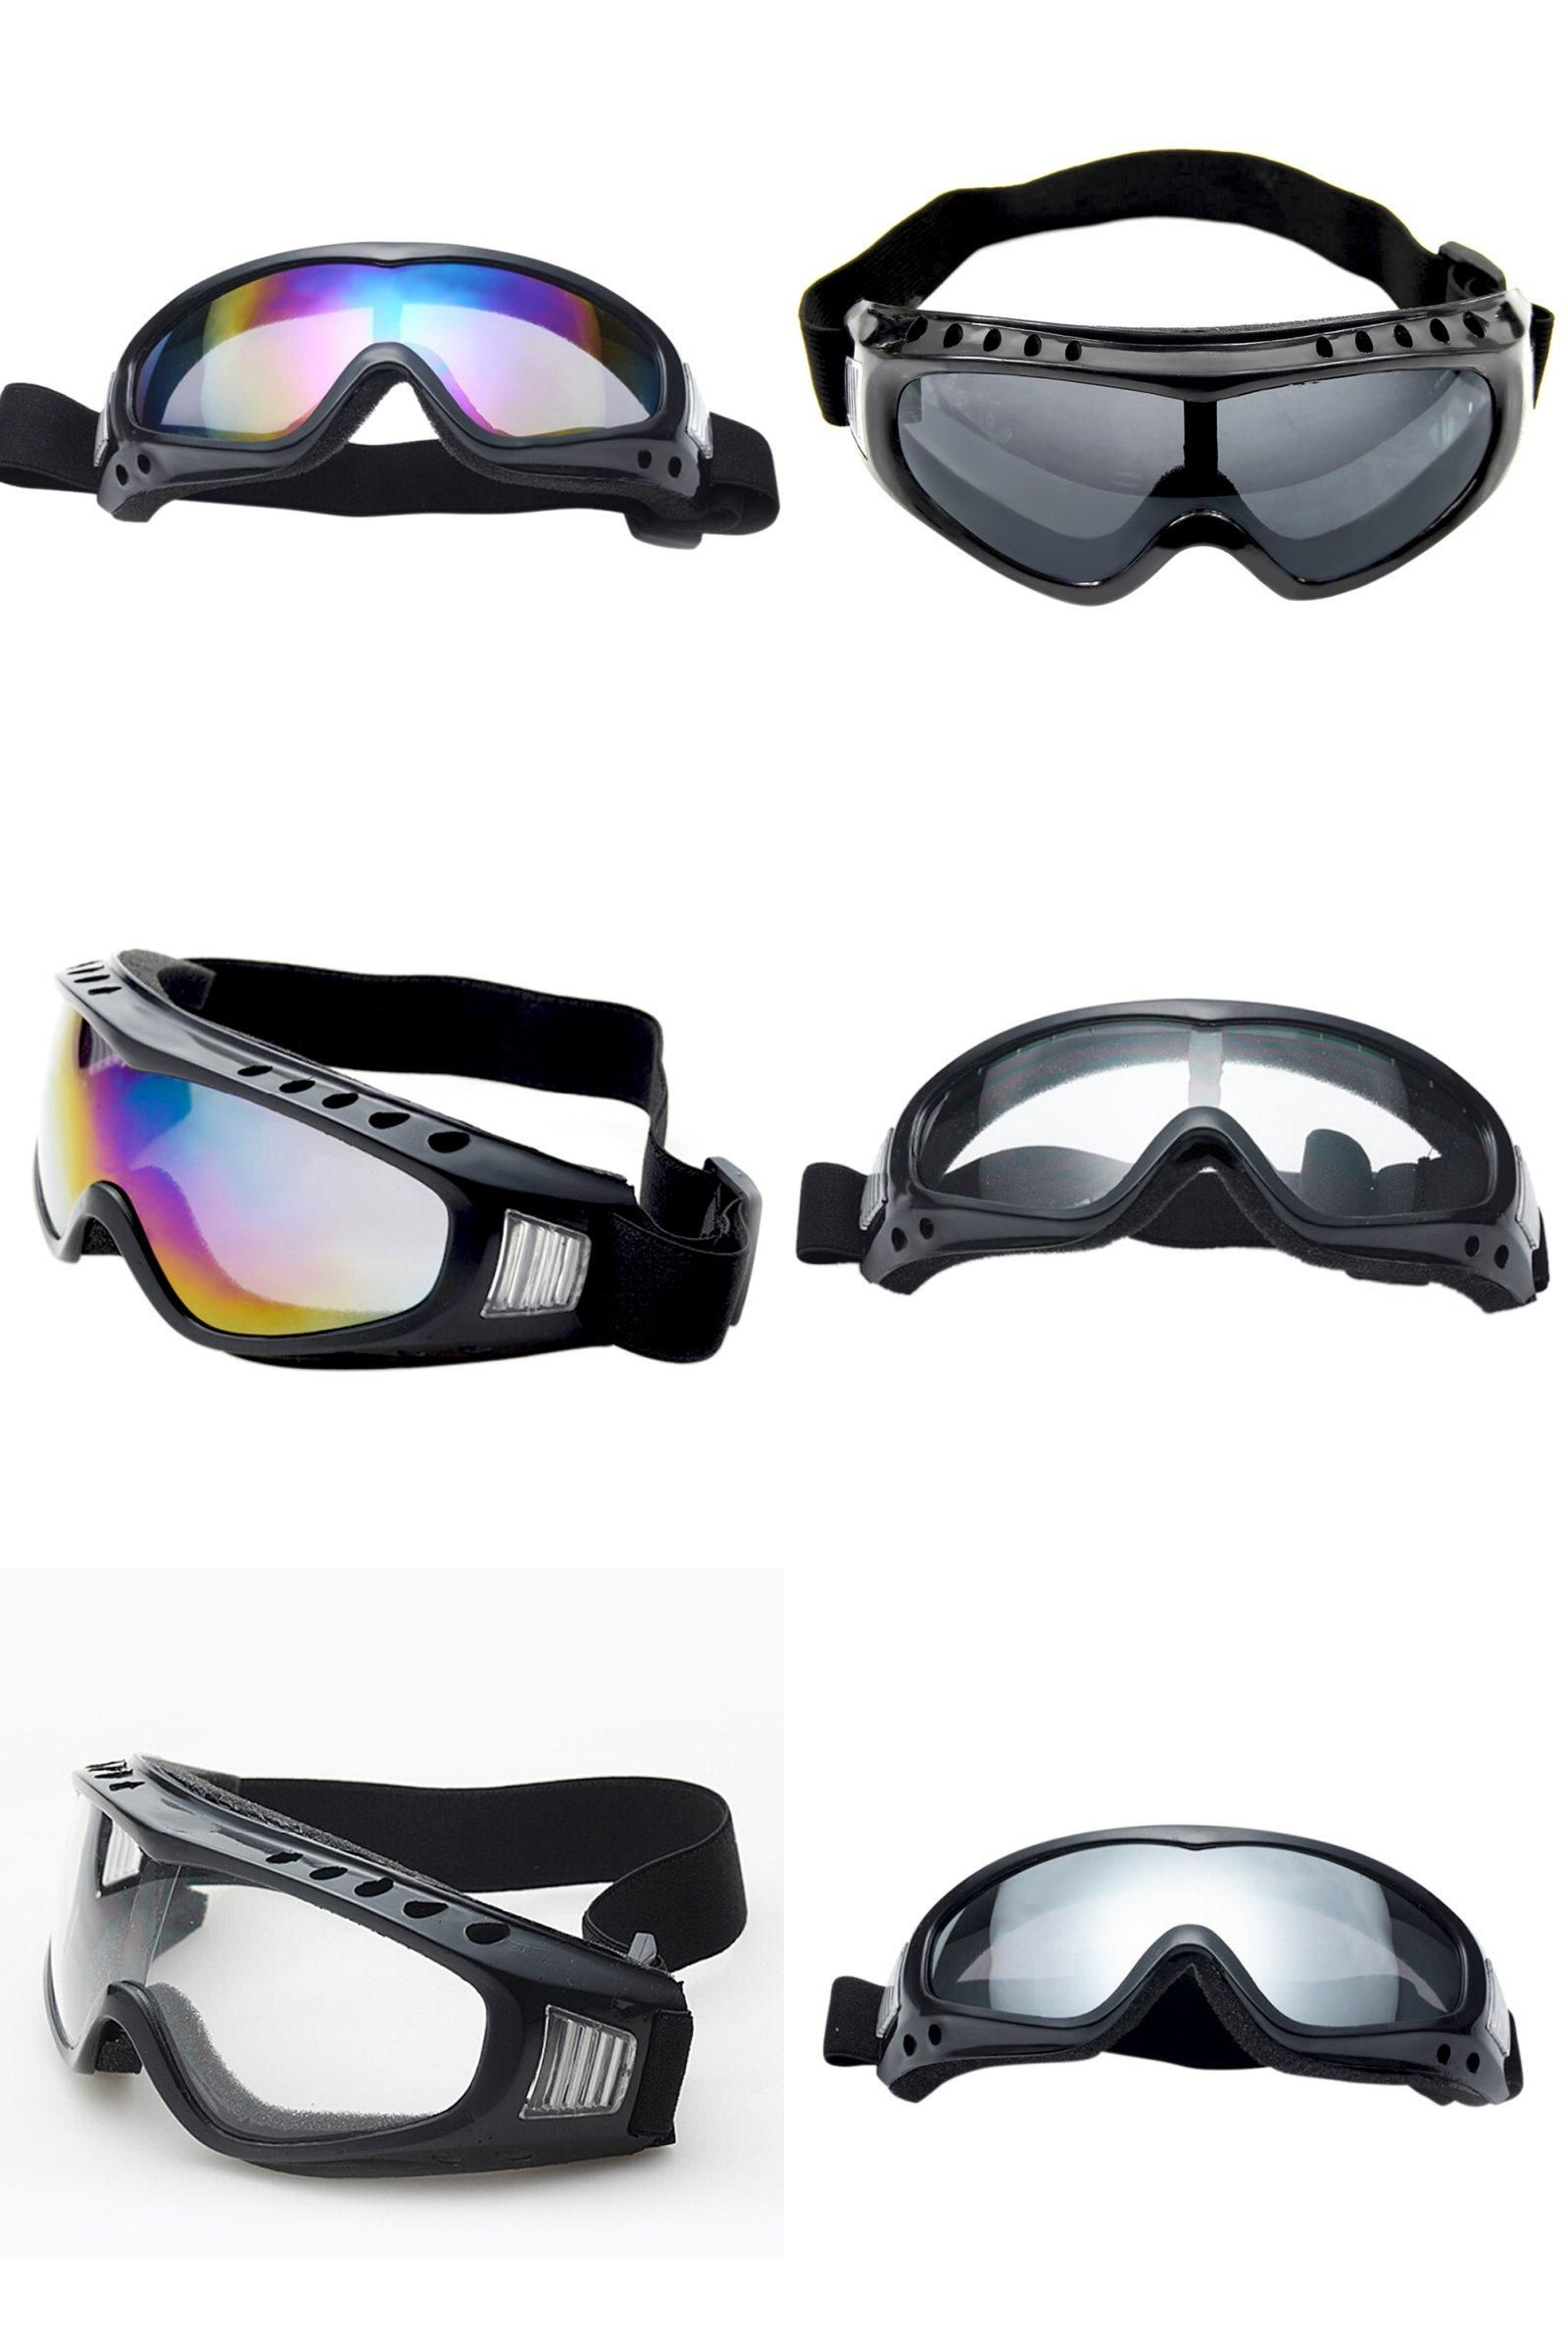 30ef95b2c0  Visit to Buy  Newest Colorful Outdoor Sport Climbing Hiking Sun Glasses  Dustproof Ski Snowboard